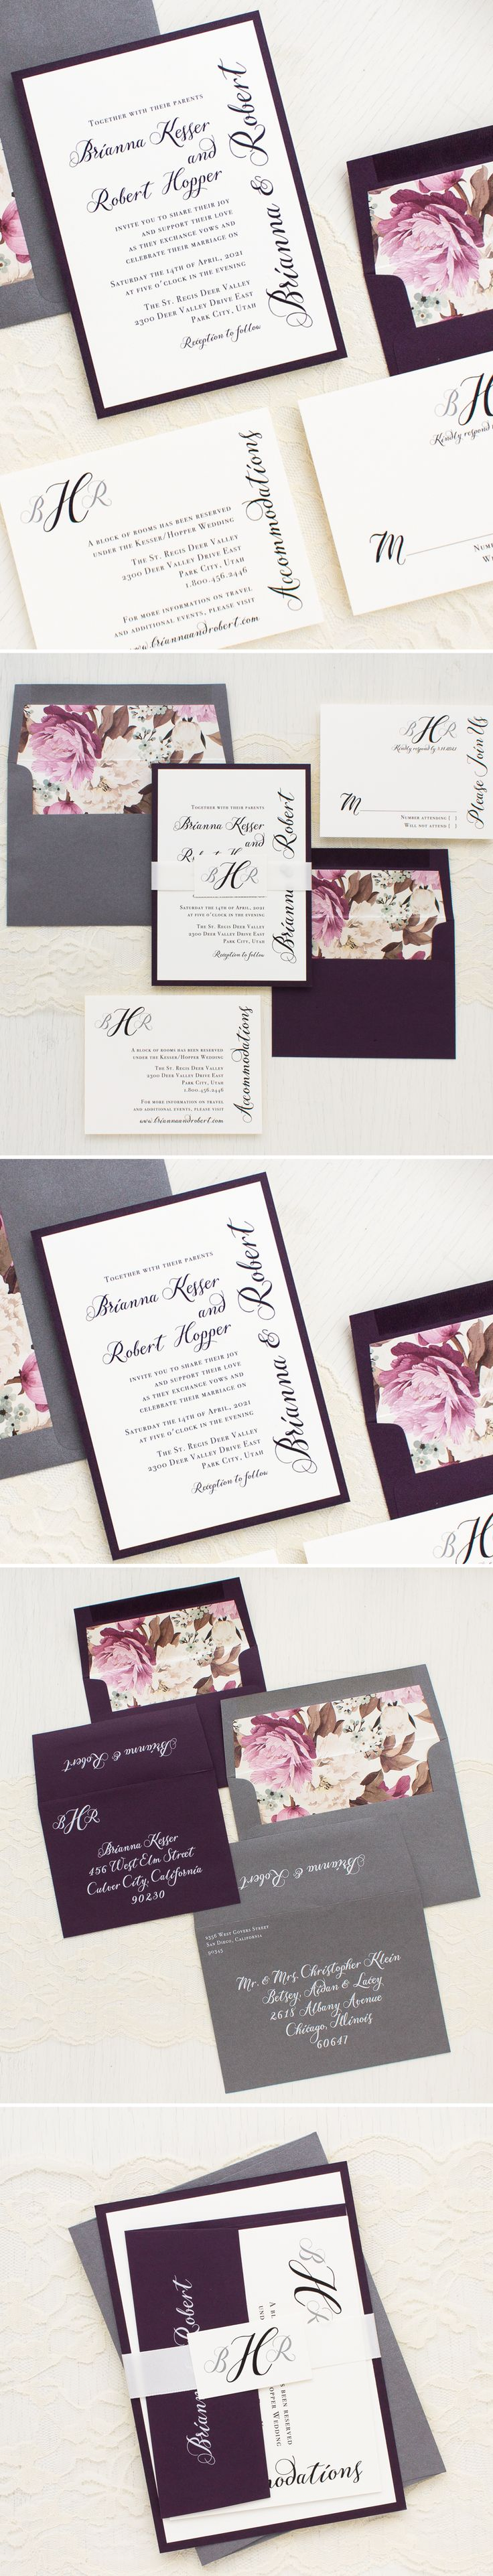 Elegant plum and ivory invites with a stylish monogram belly band tag and romantic floral envelope liners. Simple Calligraphy wedding invitations are designed for a modern affair. Sleek and classy, they'll set an elegant tone for your sophisticated nuptials.